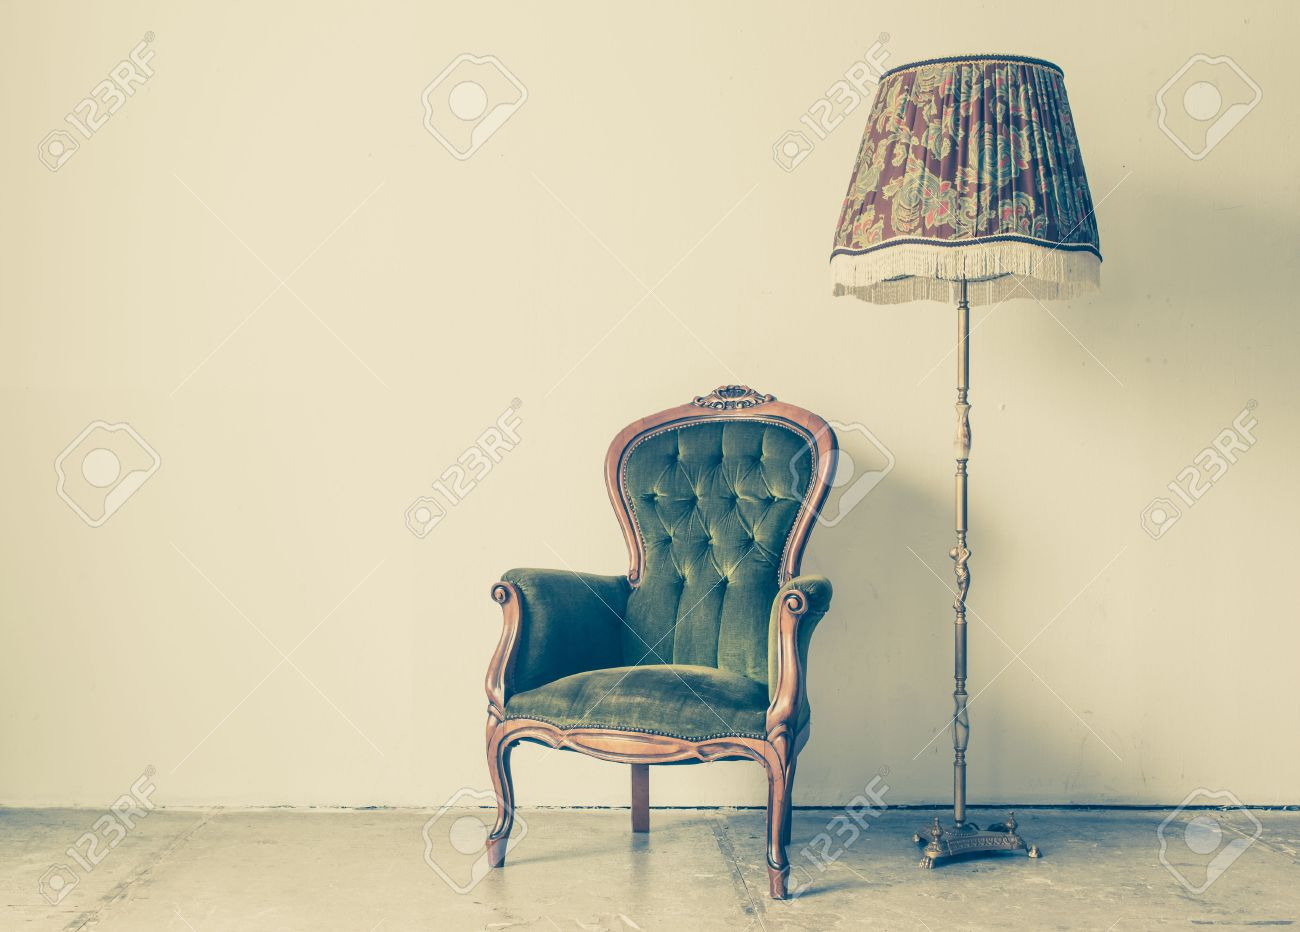 Stock Photo - Vintage and antique chair with white wall background - Vintage And Antique Chair With White Wall Background Stock Photo